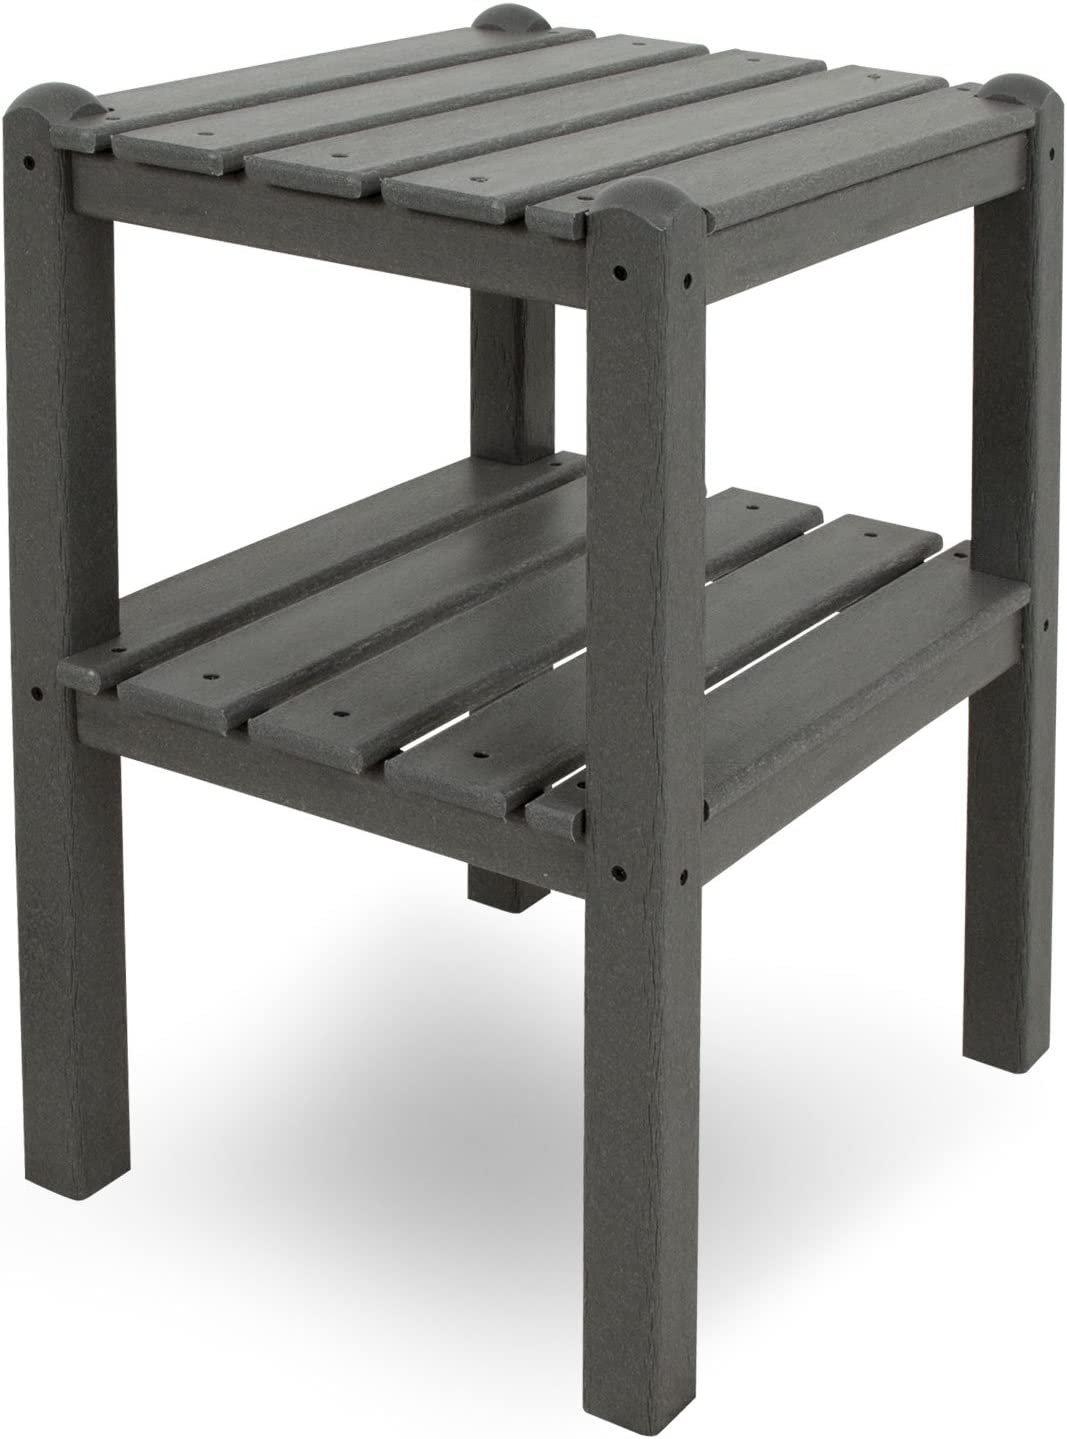 POLYWOOD TWSTGY 2-Shelf Side Table, Slate Grey : Patio Side Tables : Garden & Outdoor